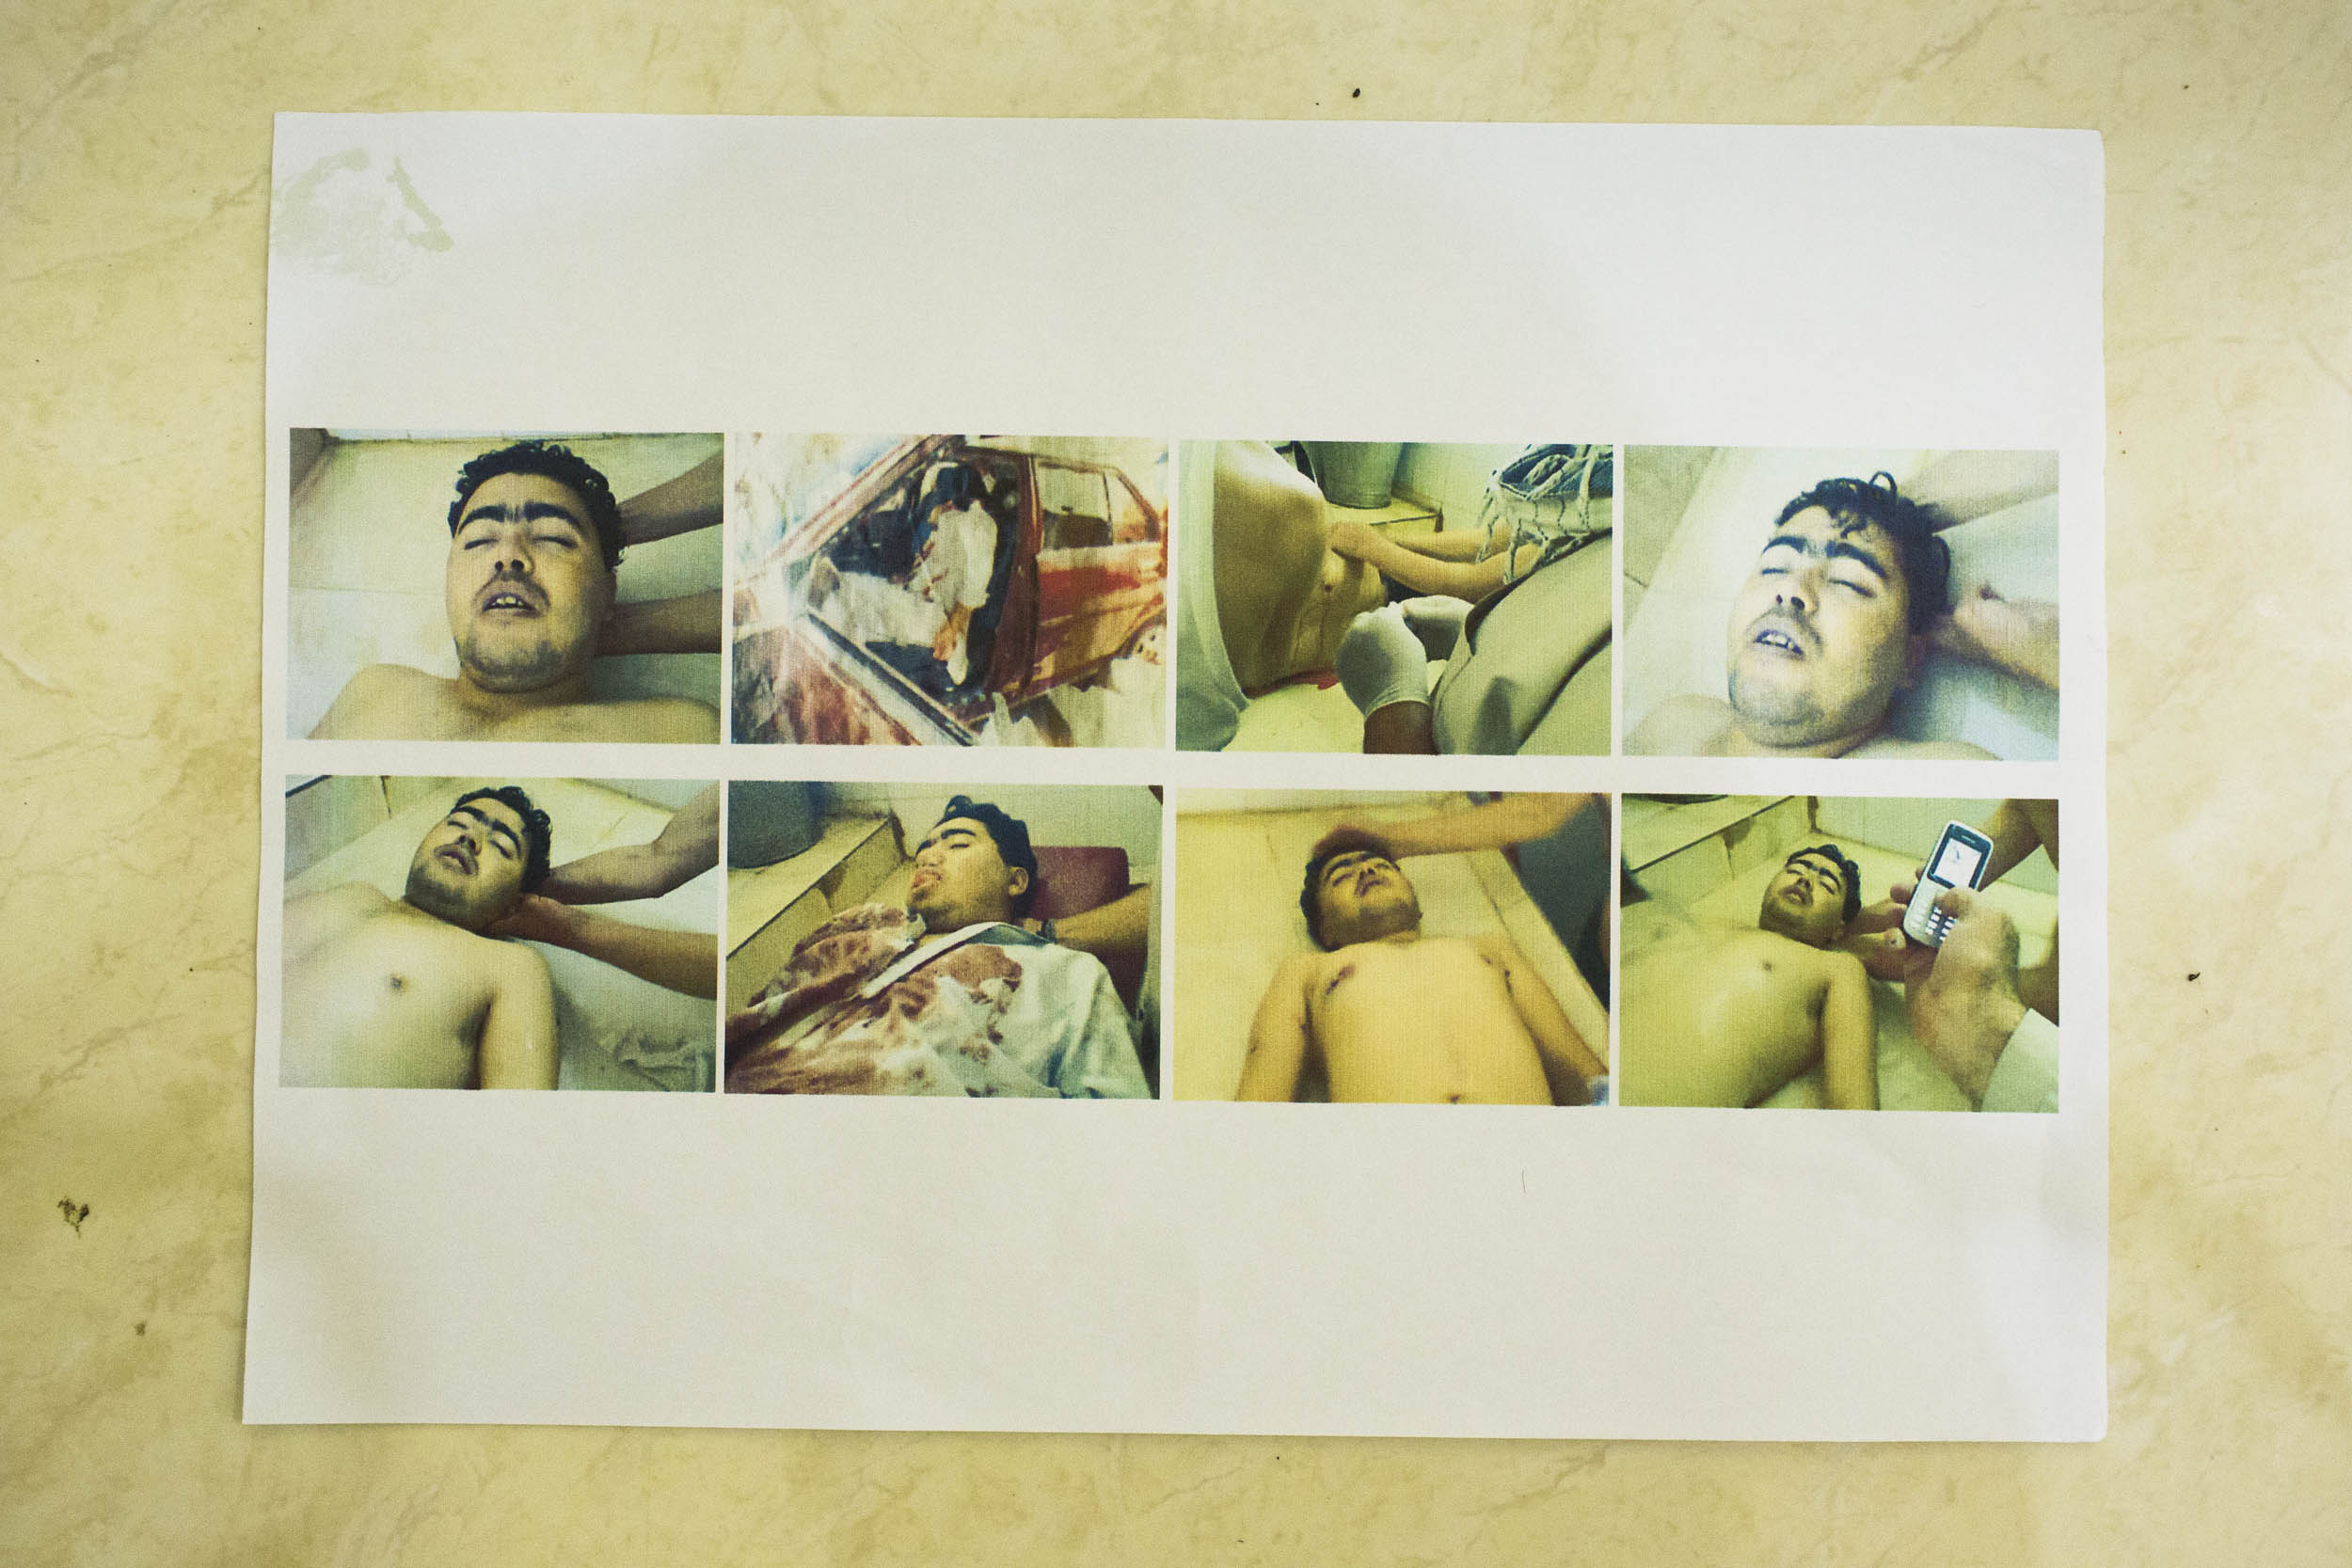 Cisarua, West java, Indonesia. A document  belonging to a Hazara asylum seeker shows his nephews body after he was killed in an attack in Pakistan.